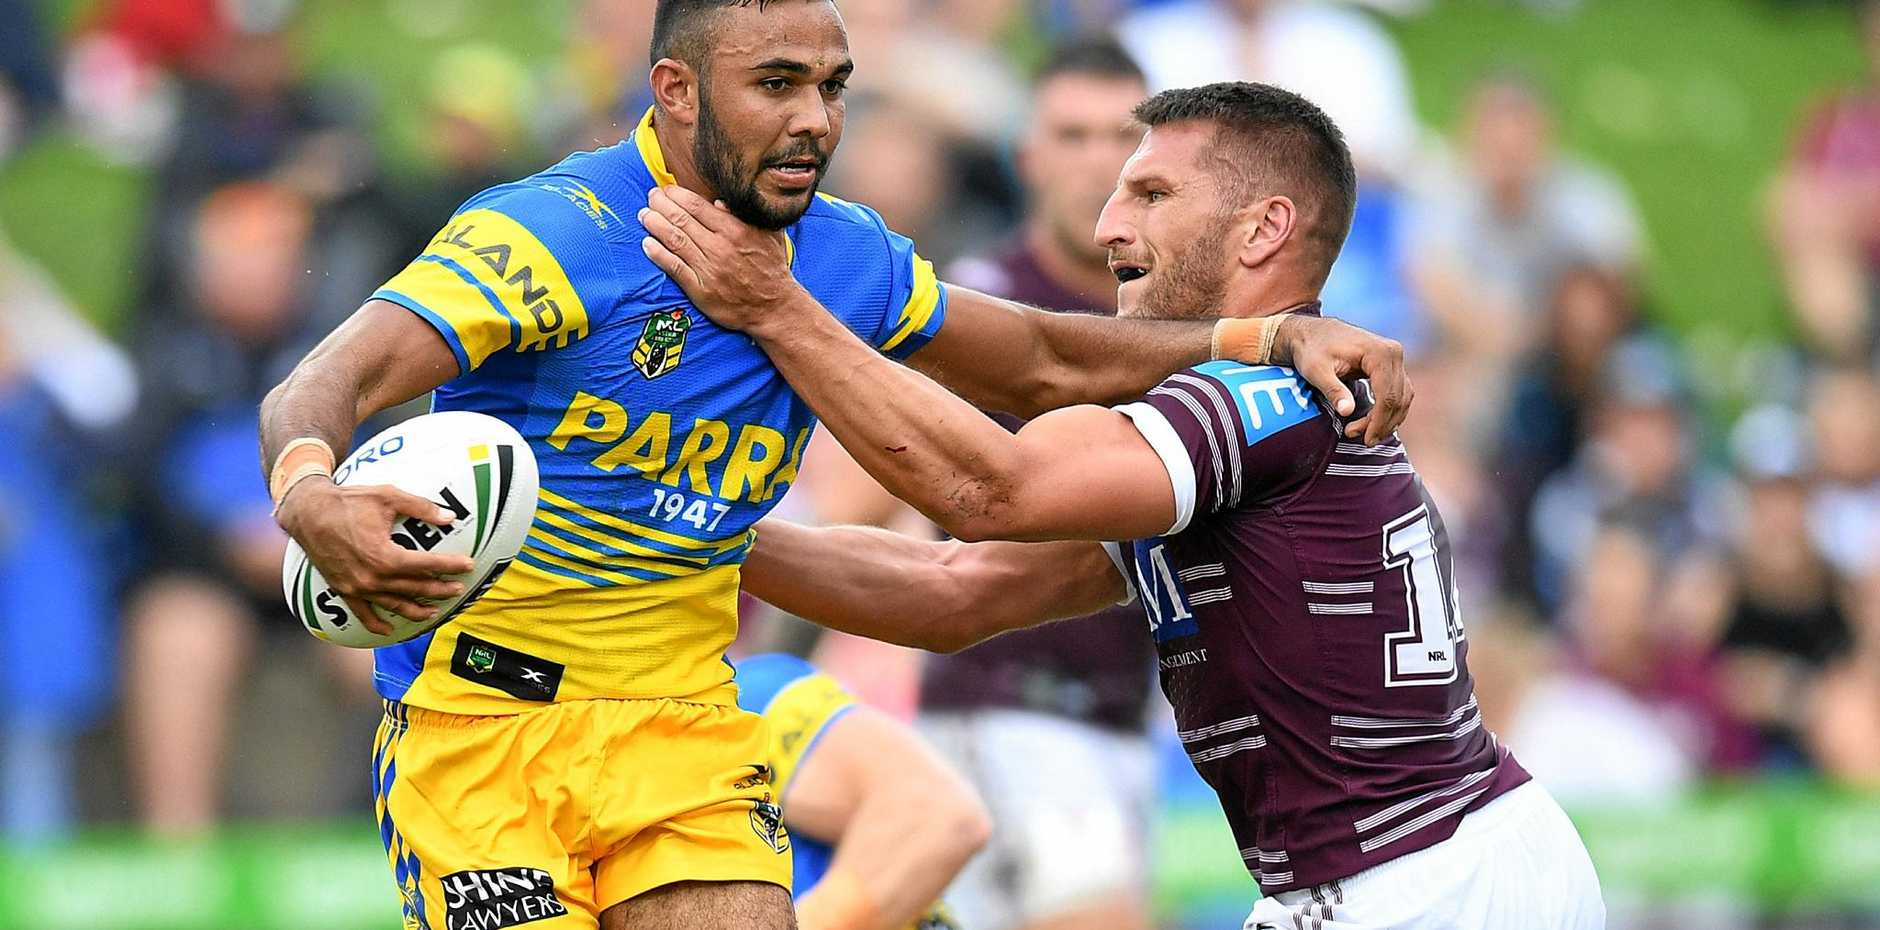 Bevan French of the Eels is tackled by Lewis Brown of the Sea Eagles.